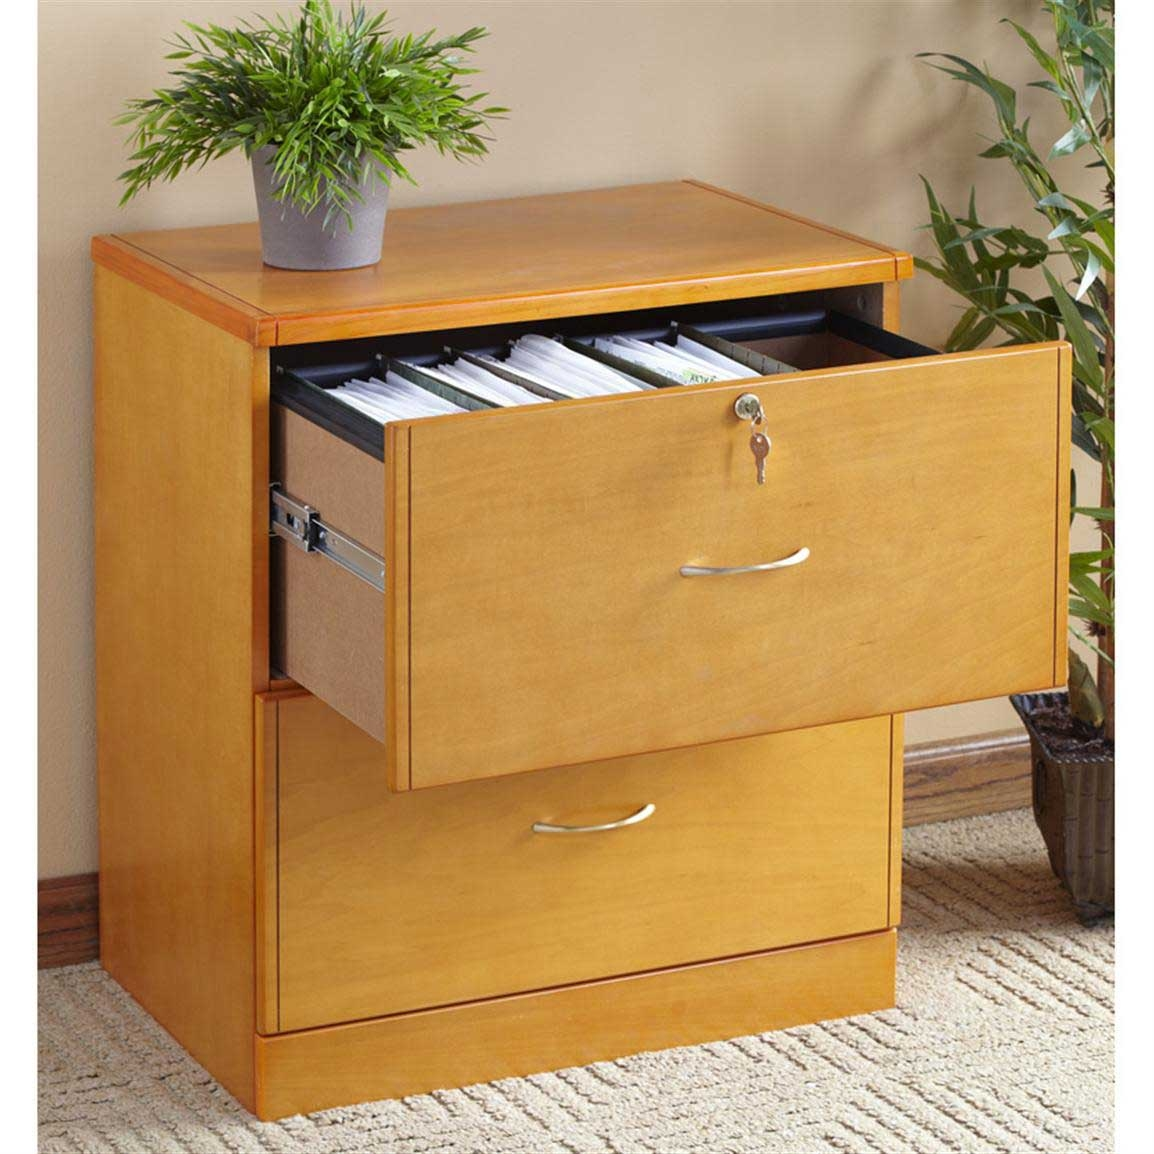 Wooden File Cabinet With Storage